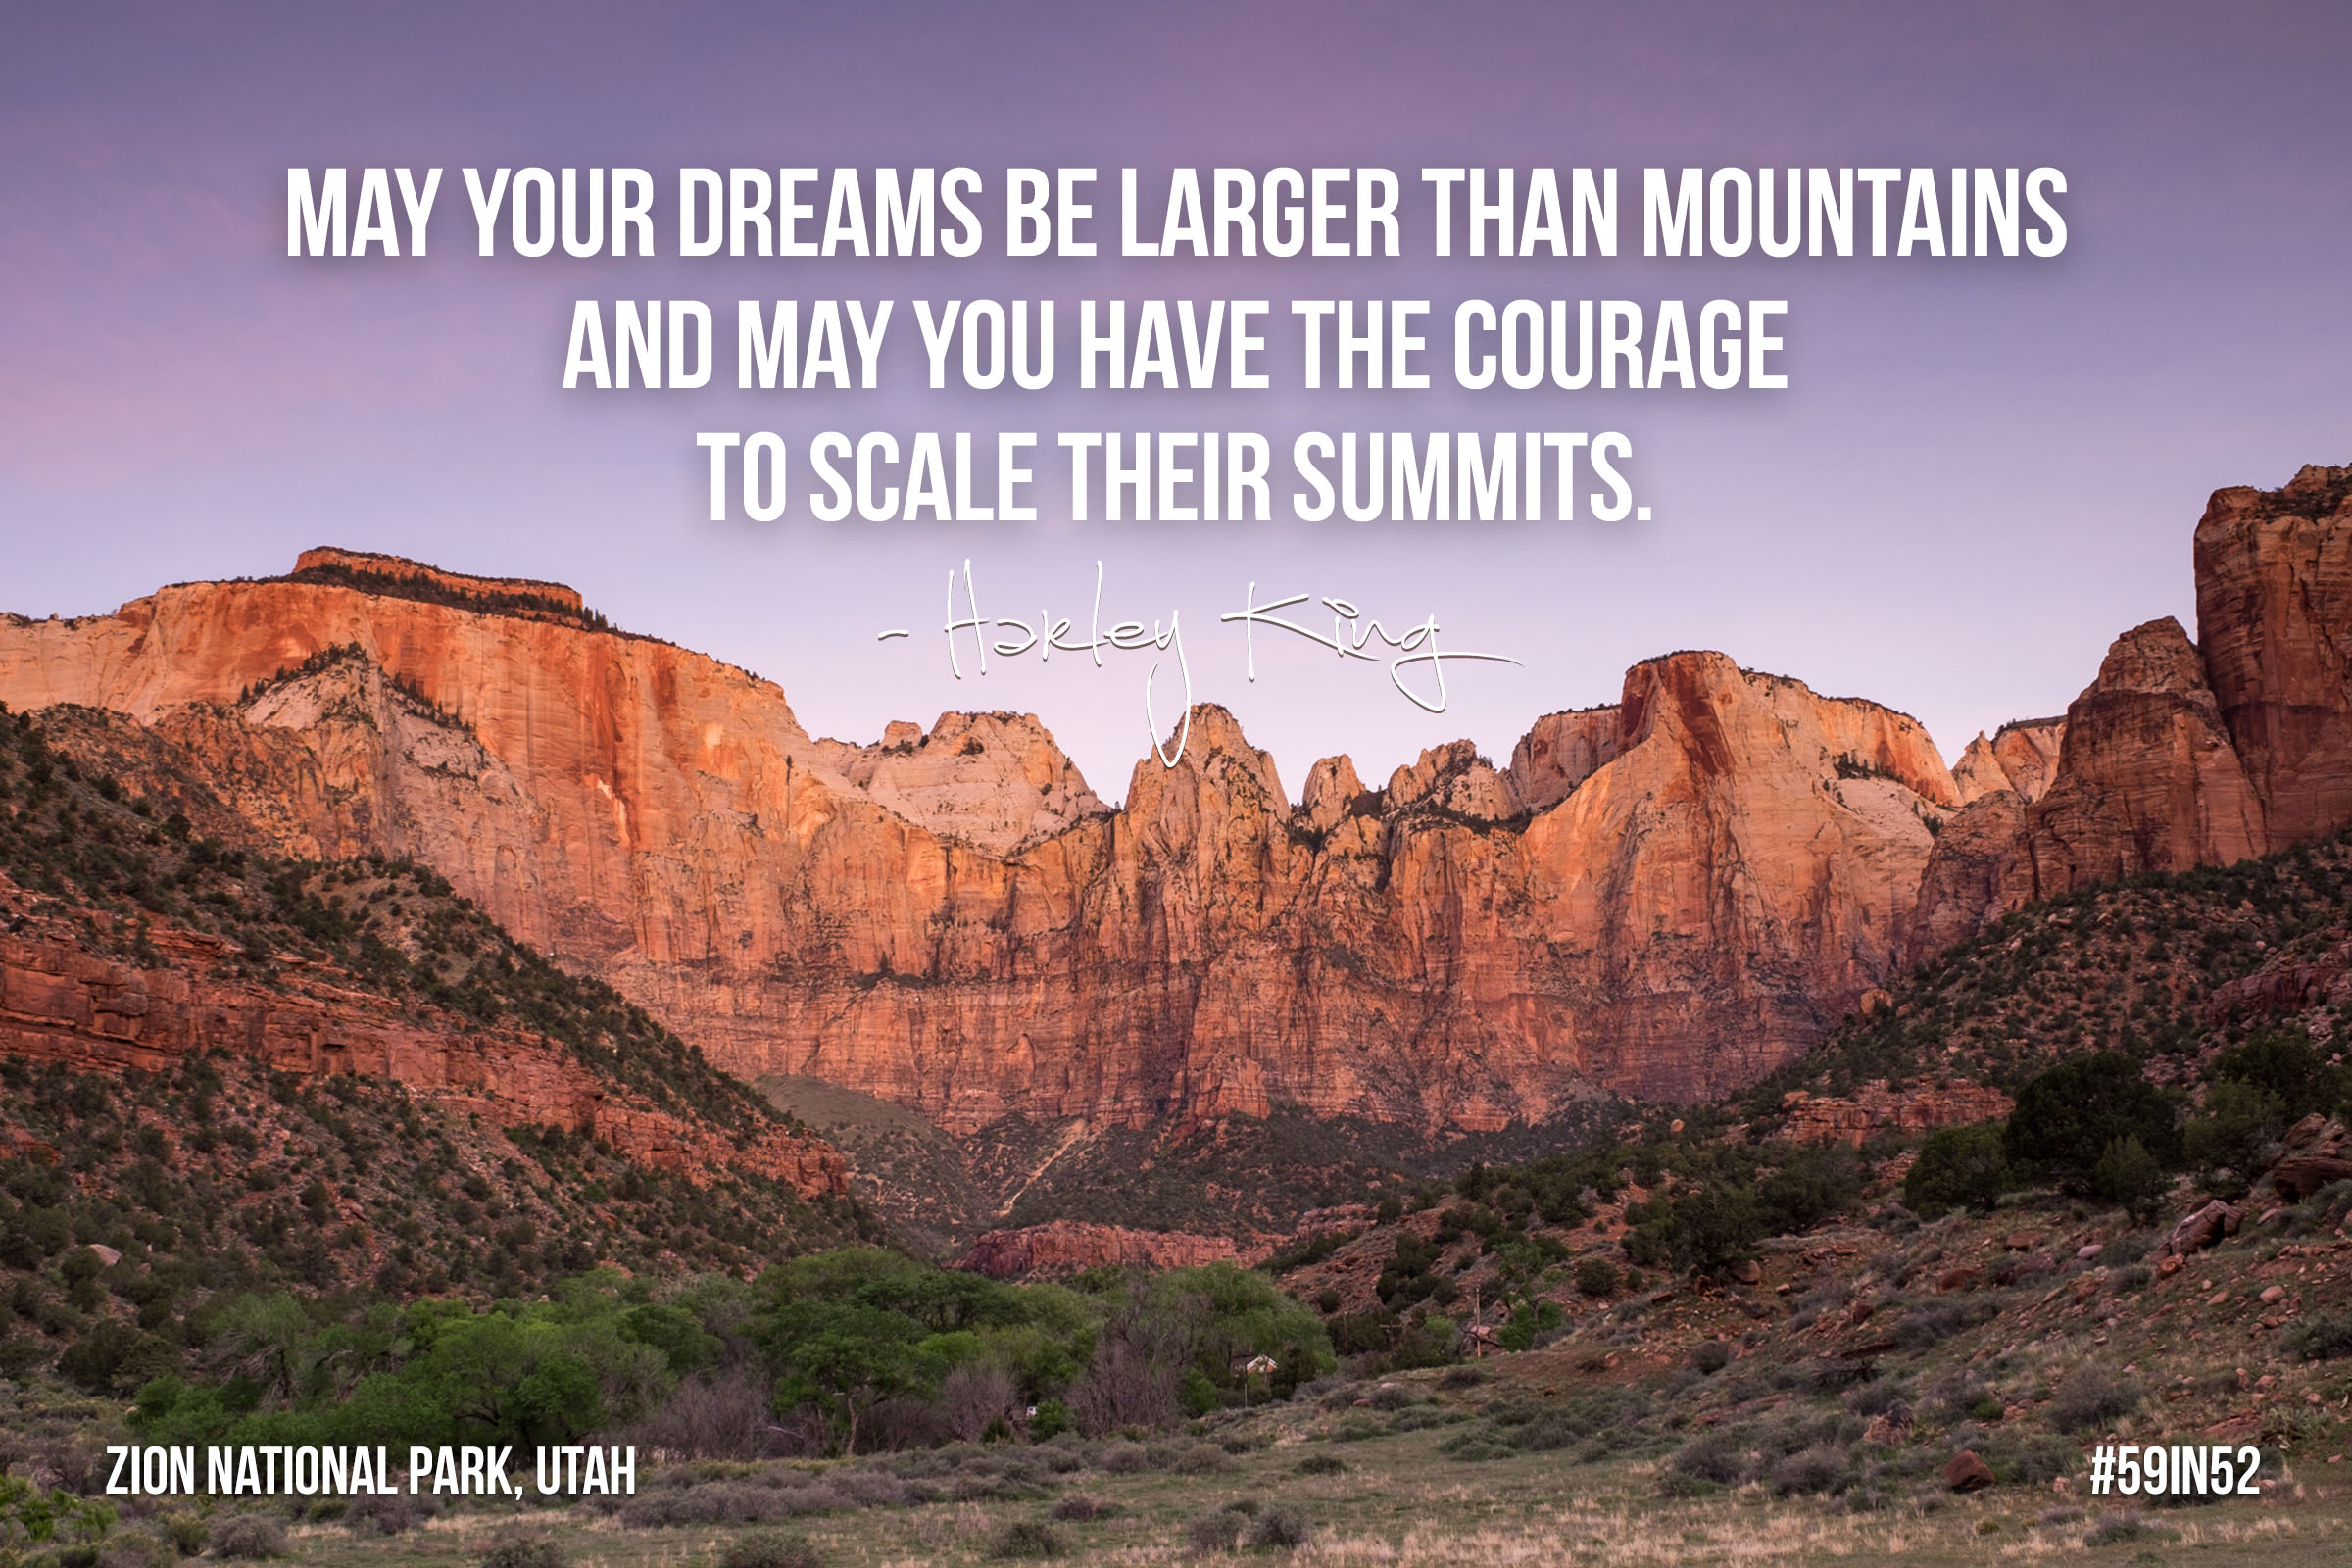 """May your dreams be larger than mountains and may you have the courage to scale their summits."" - Haley King"